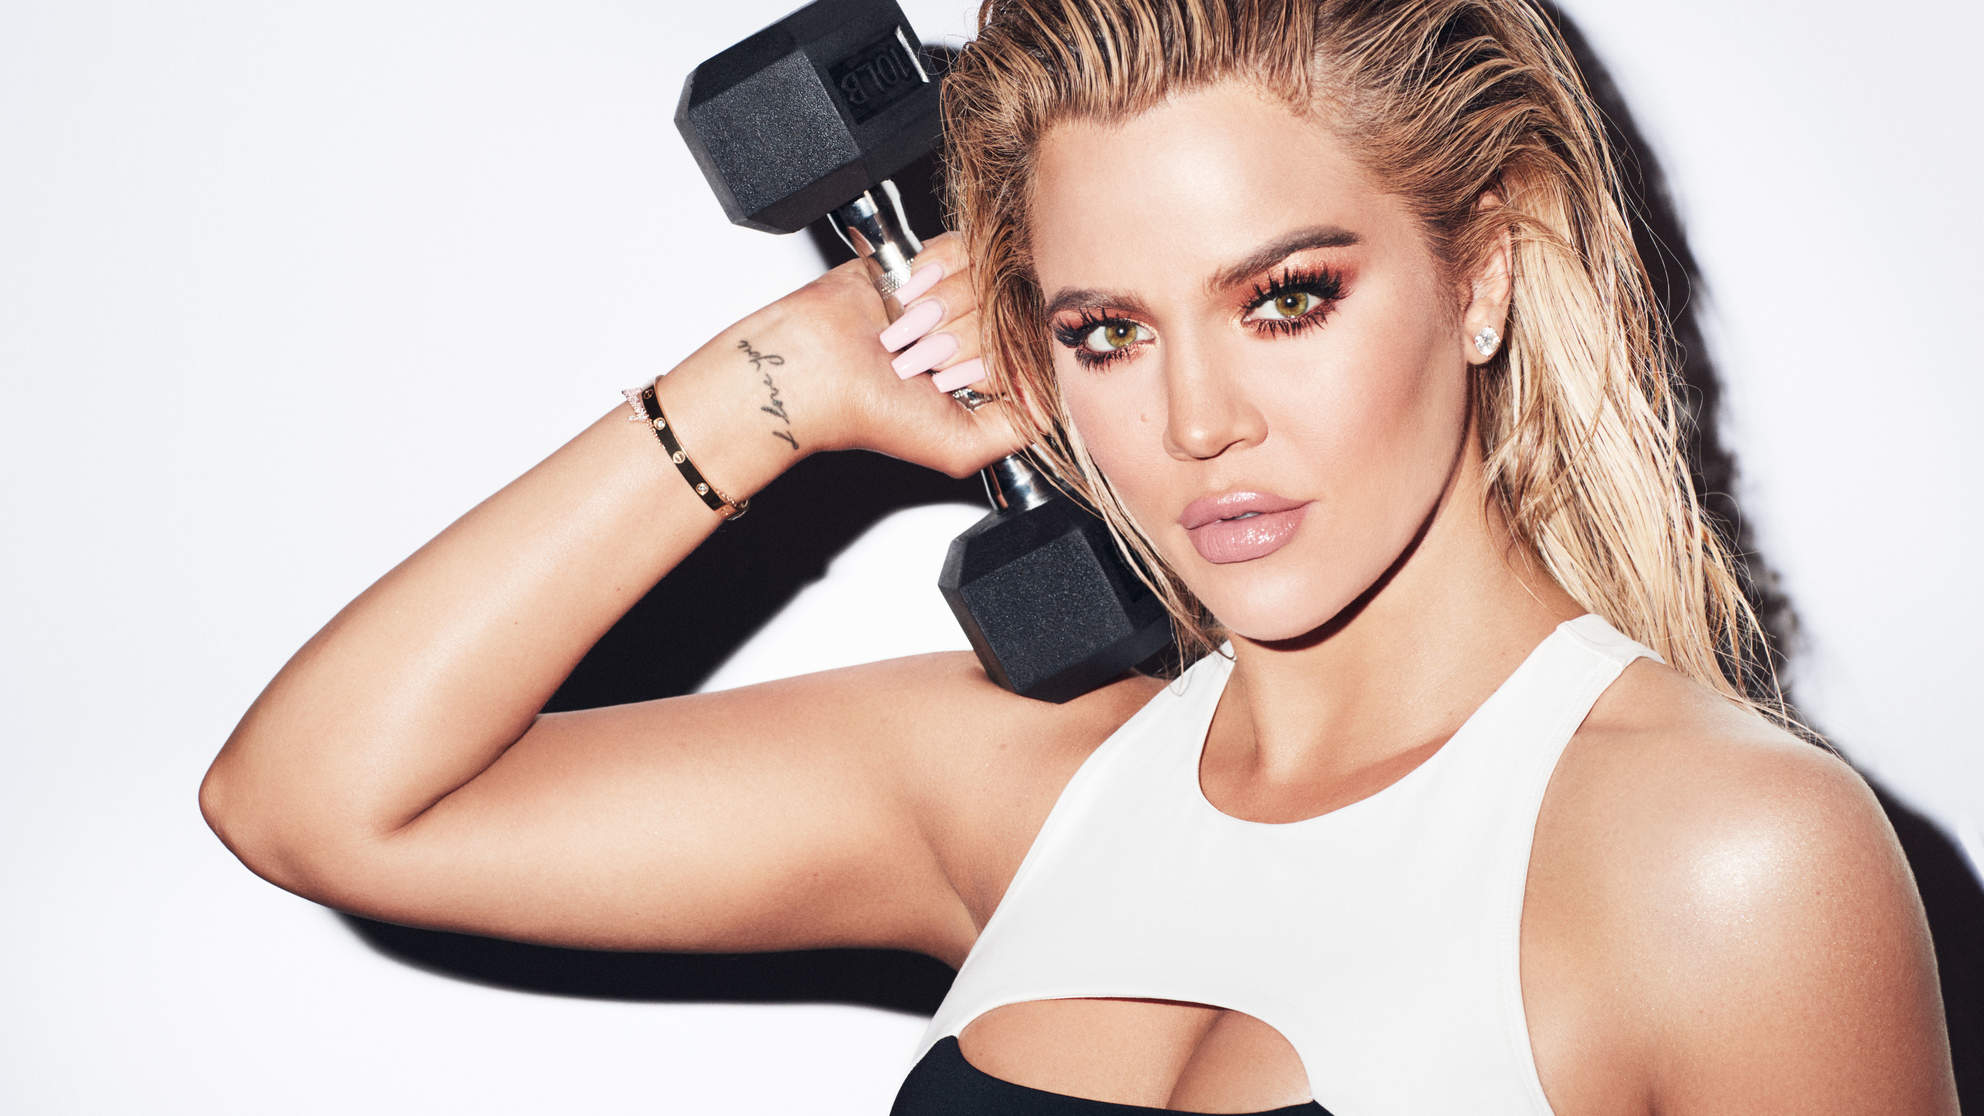 Khloe Kardashian Dumps Tristan Thompson After He Allegedly Cheated With Jordyn Woods